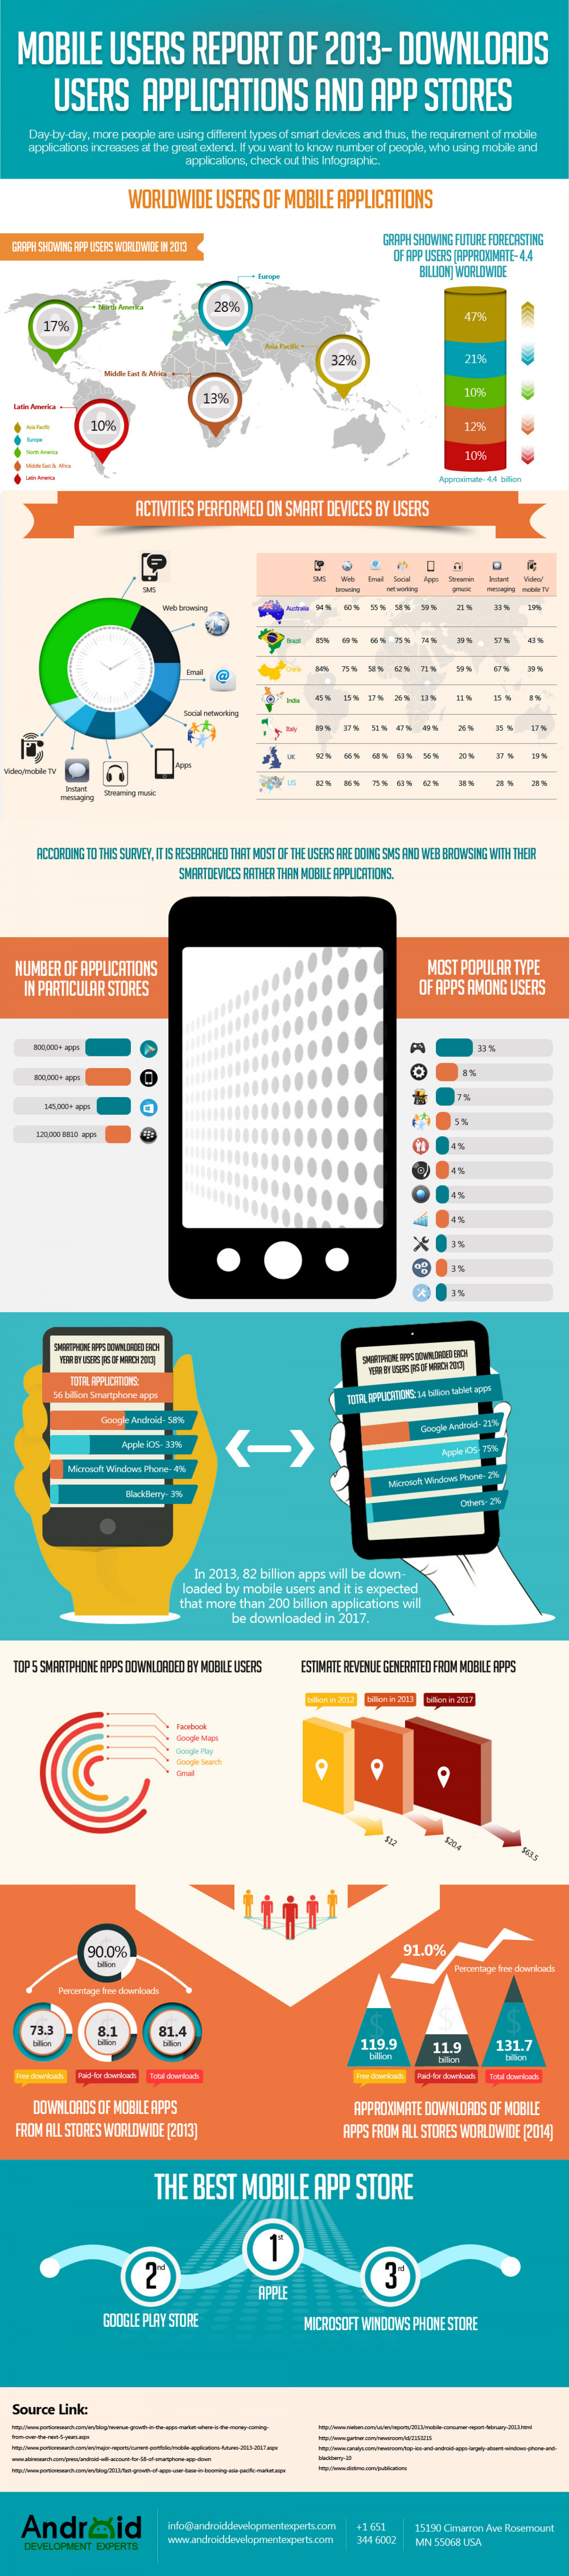 Mobile Users Report of 2013- Downloads, Users, Applications and App Stores  Infographic